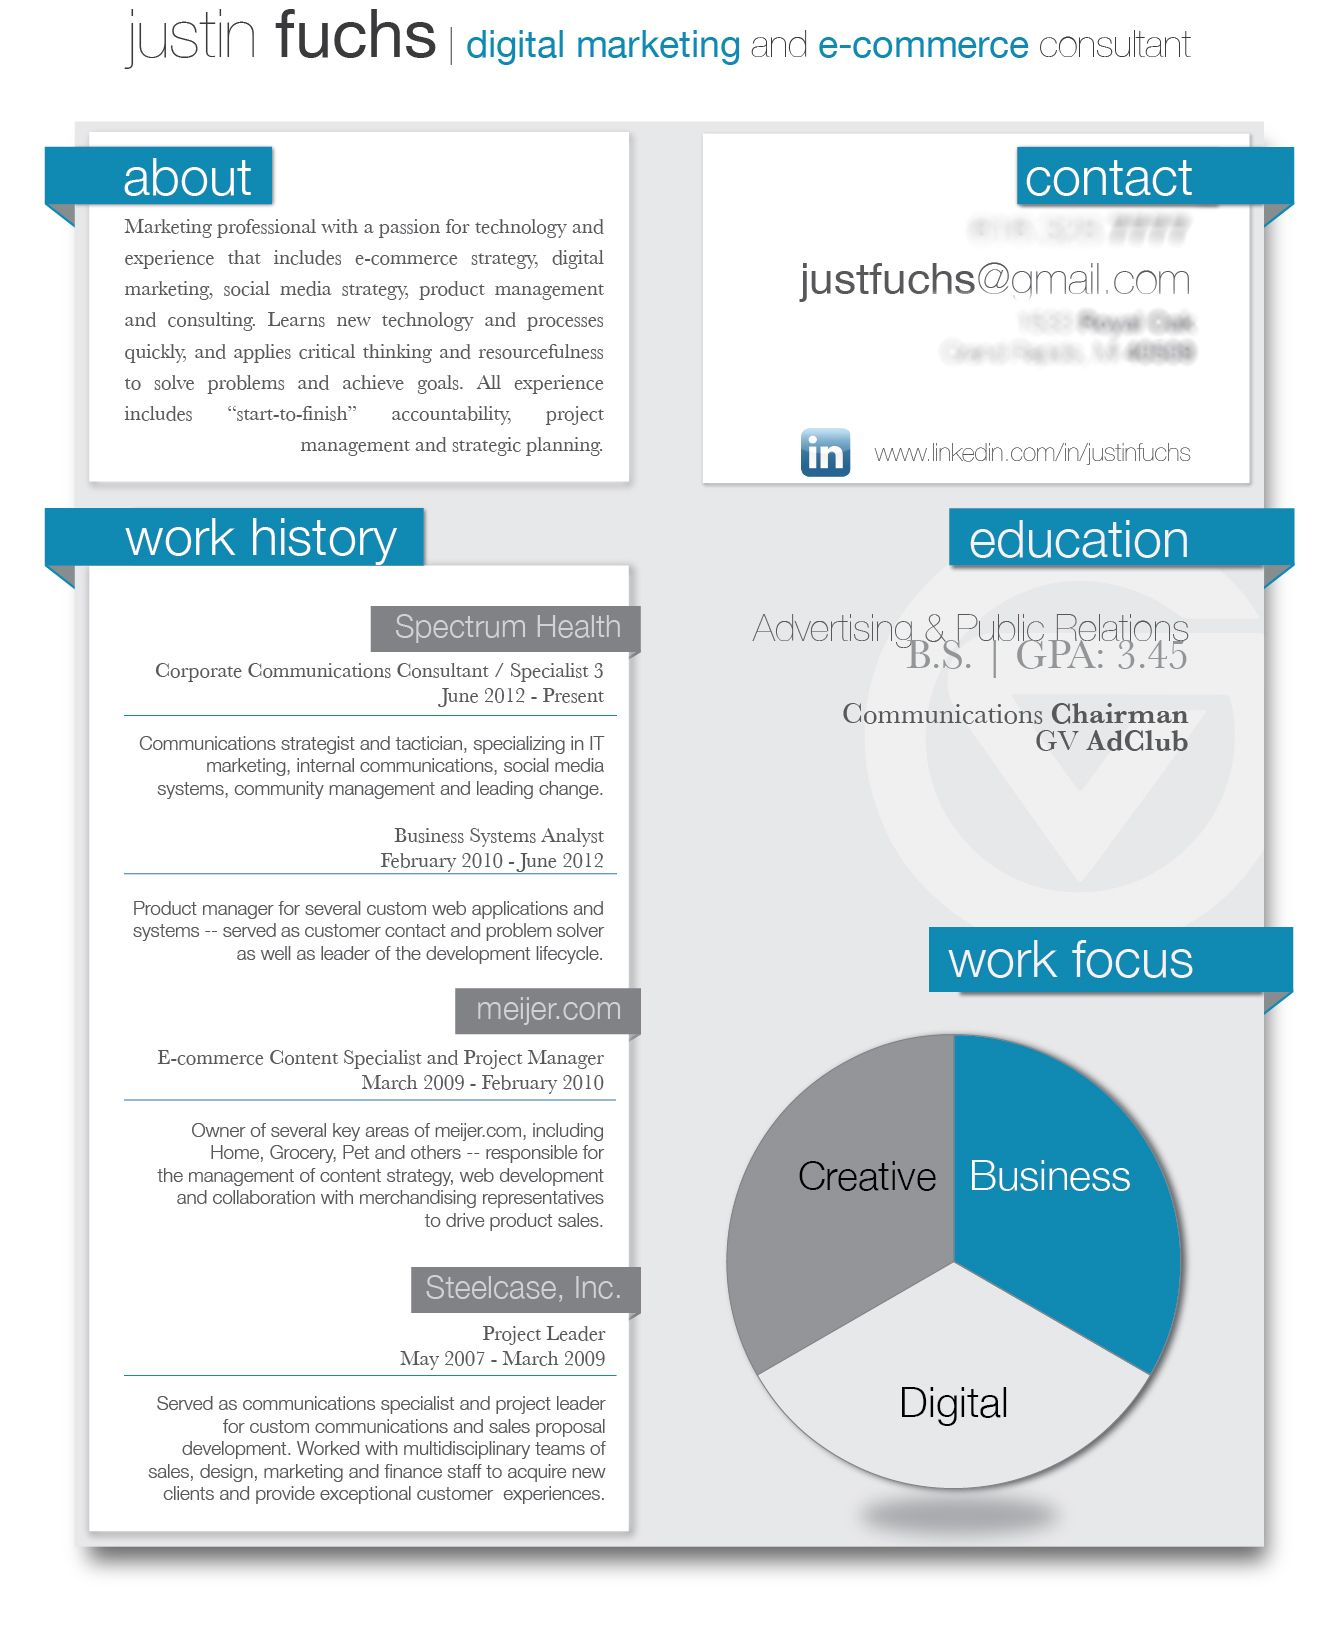 sample resume for digital marketing career brandneux com work sample resume for digital marketing career brandneux com